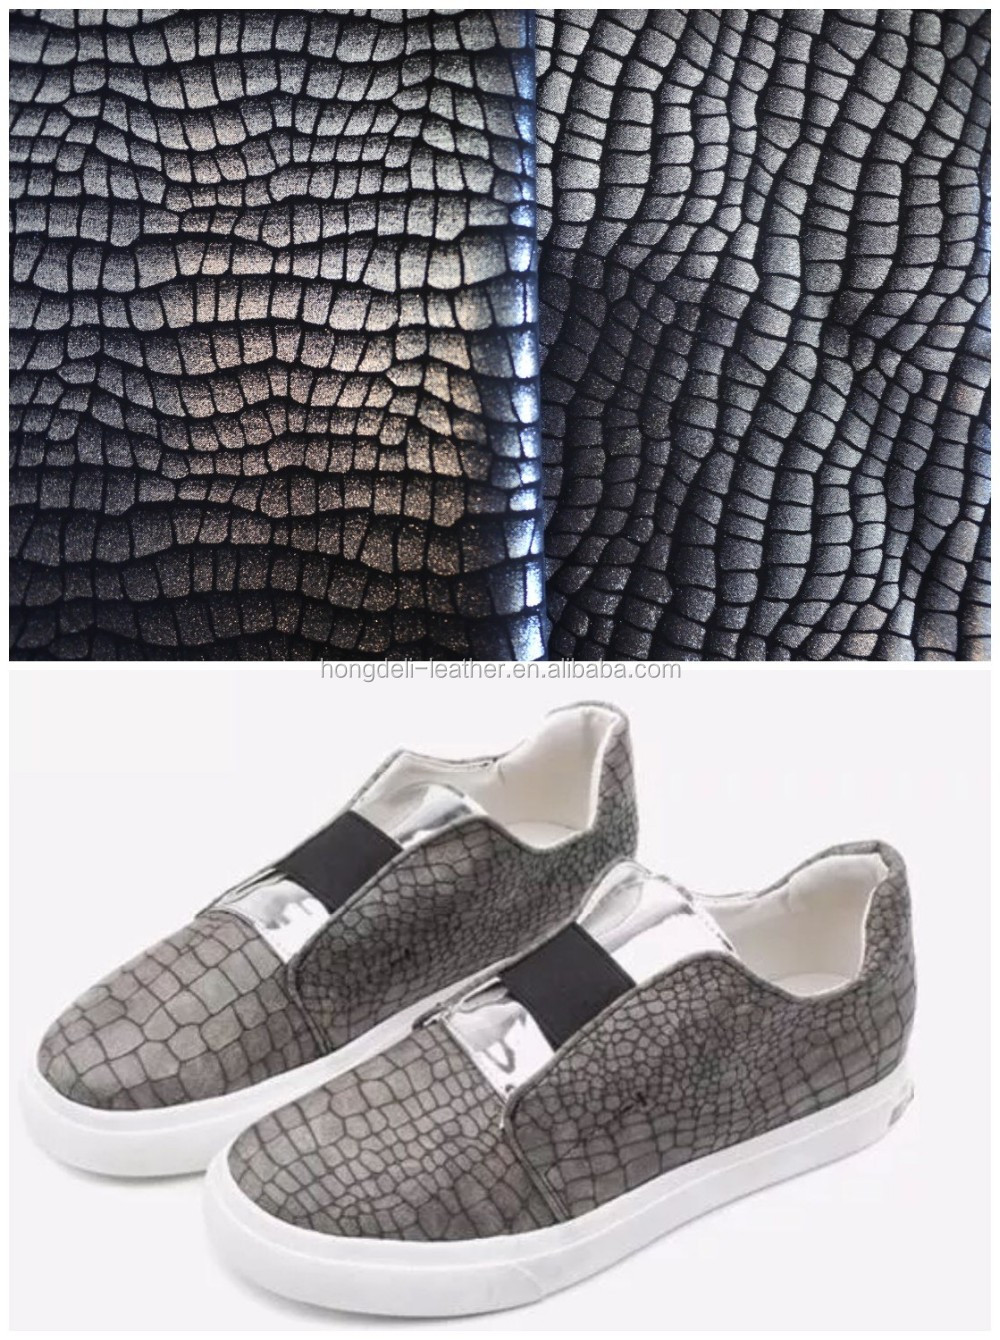 pu synthetic leather new design for shoes,fashion snake design for man shoes